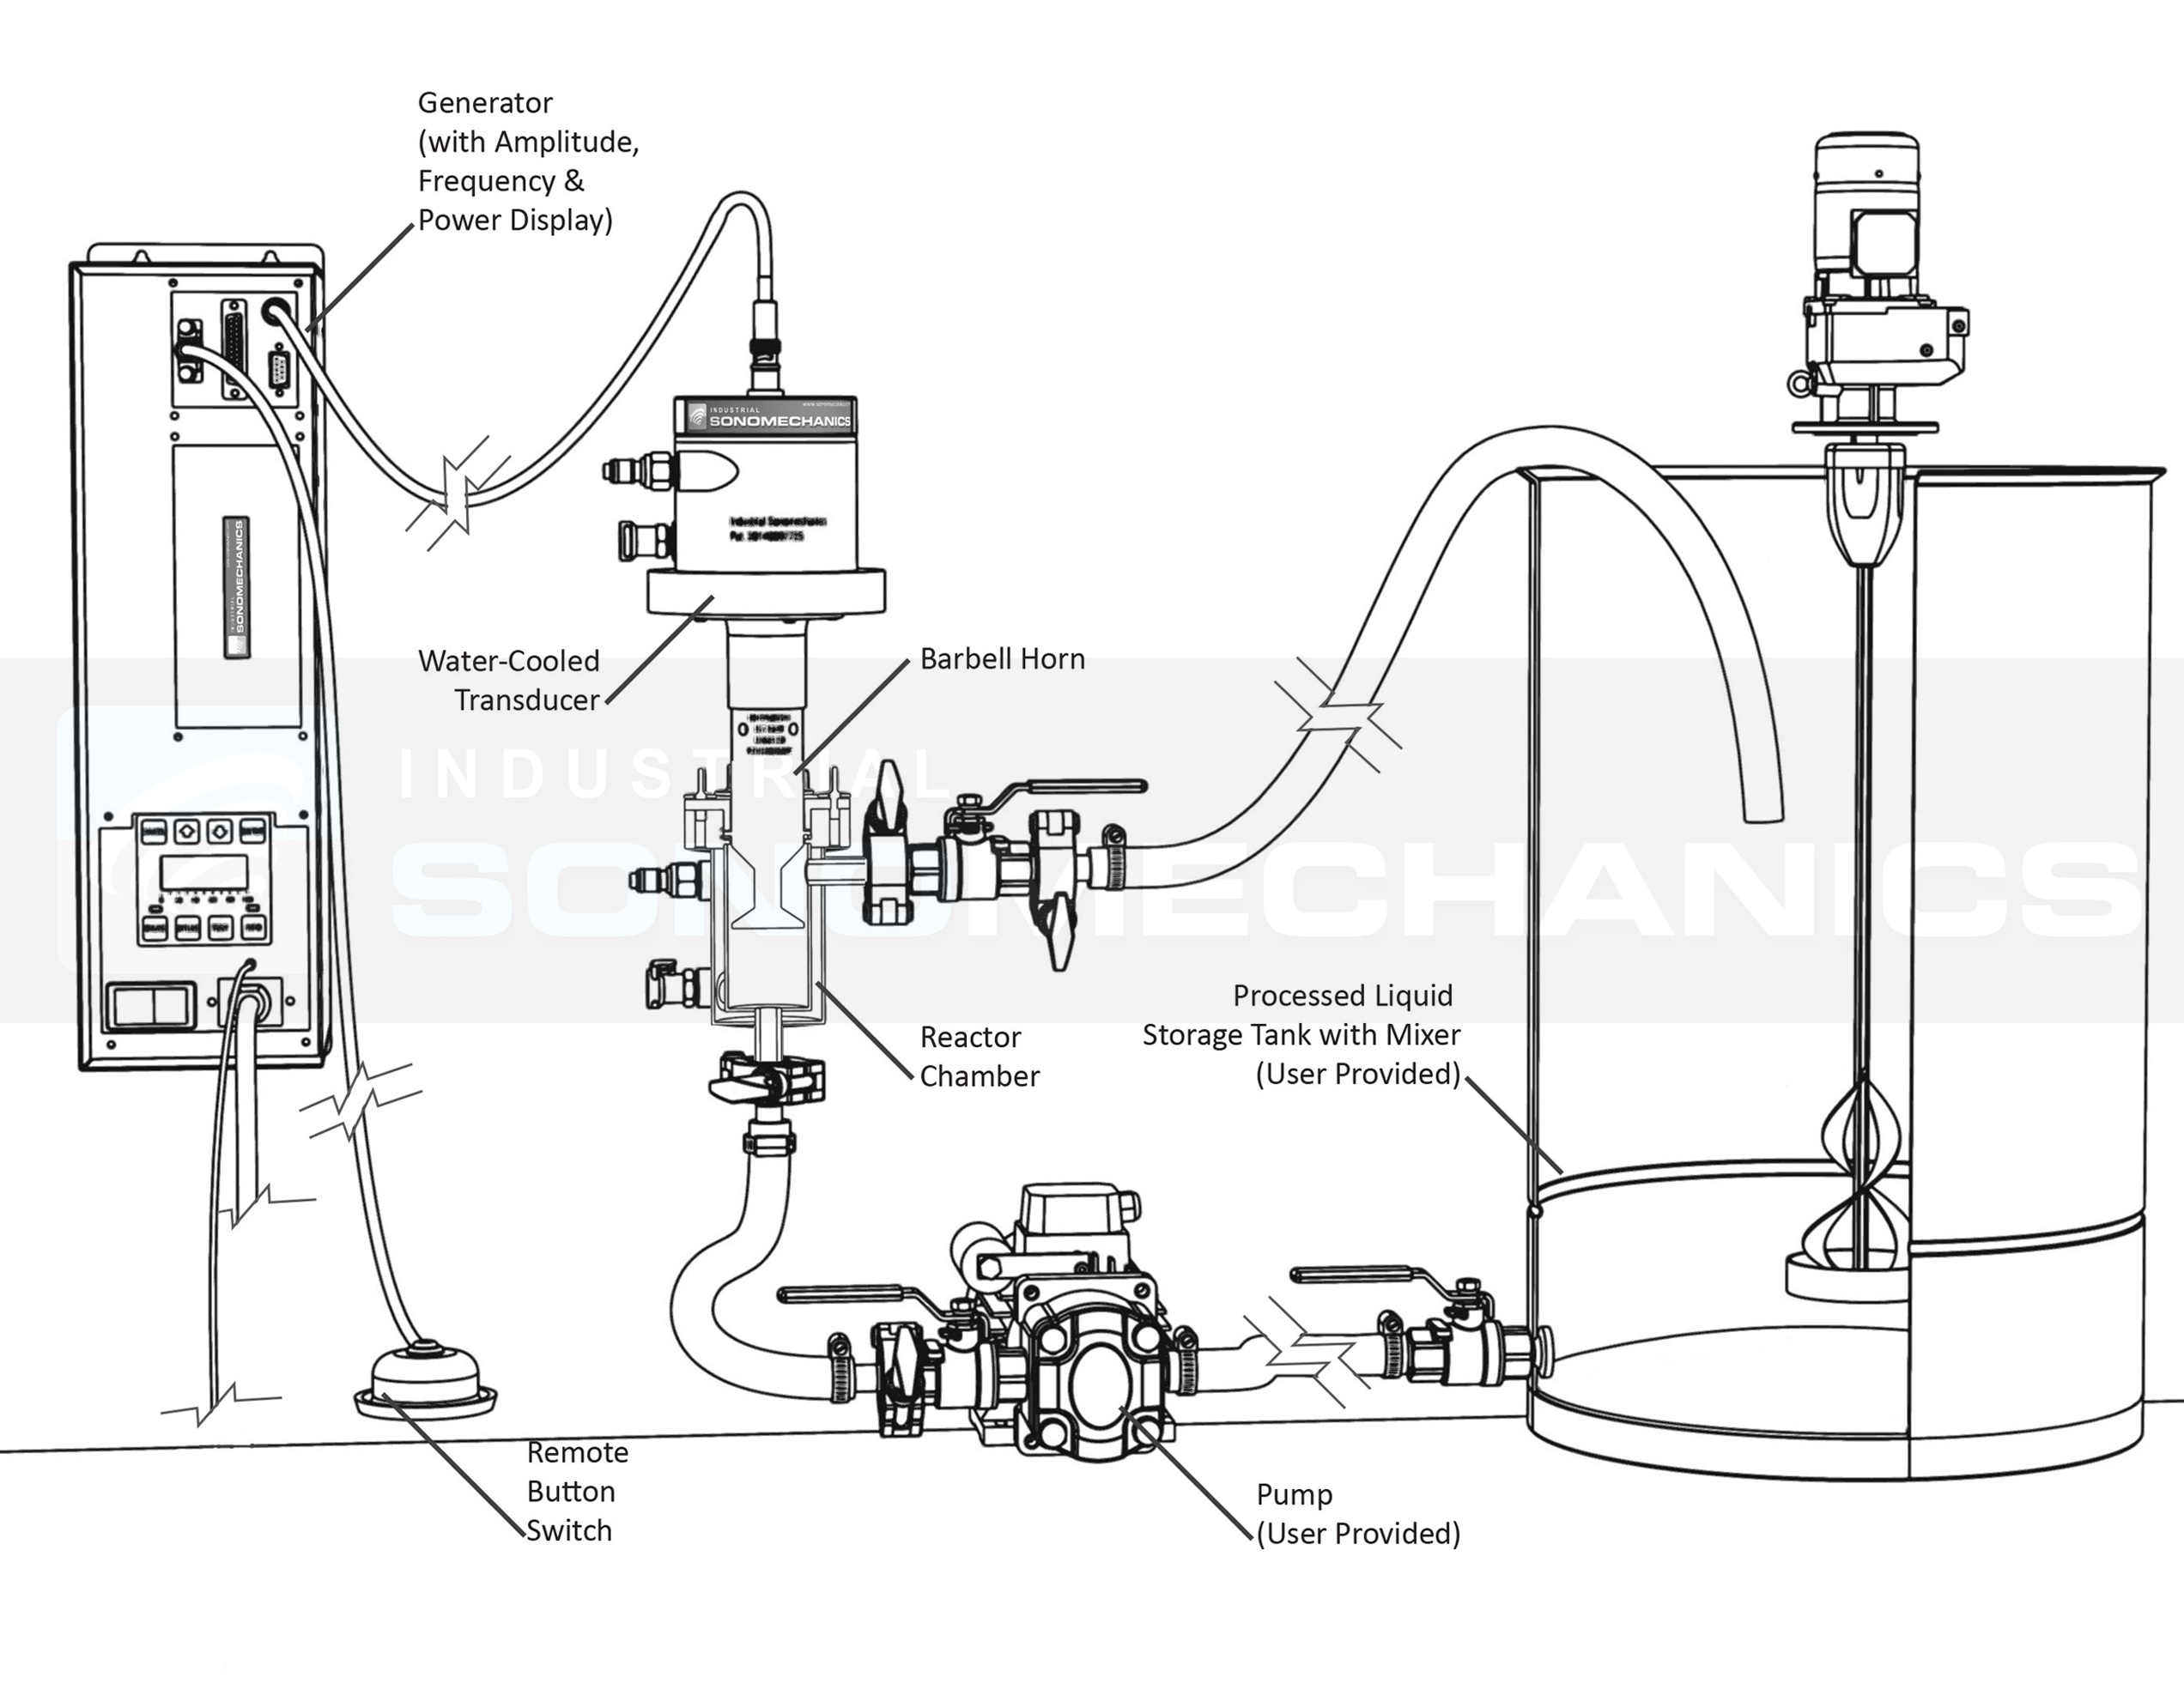 Recirculating mode schematic bsp-1200.jpg